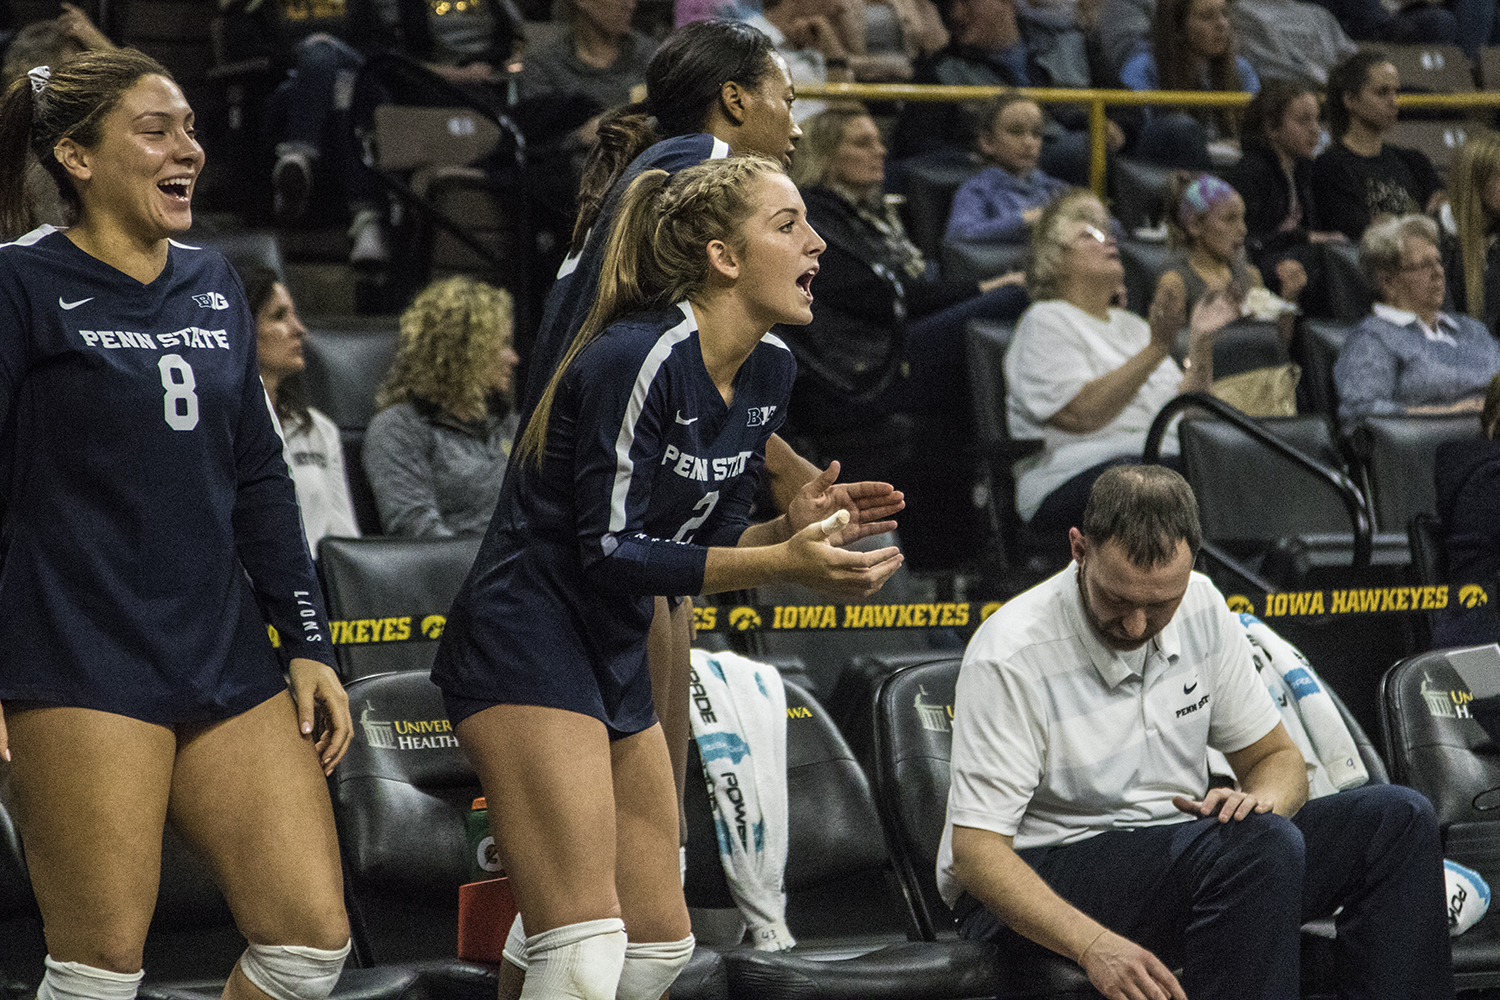 Penn+State+junior+Emily+Sciorra+cheers+on+her+team+during+a+volleyball+match+between+Iowa+and+Penn+State+at+Carver-Hawkeye+Arena+on+Saturday%2C+Nov.+3%2C+2018.+The+Hawkeyes+were+shut+out+by+the+Nittany+Lions%2C+3-0.